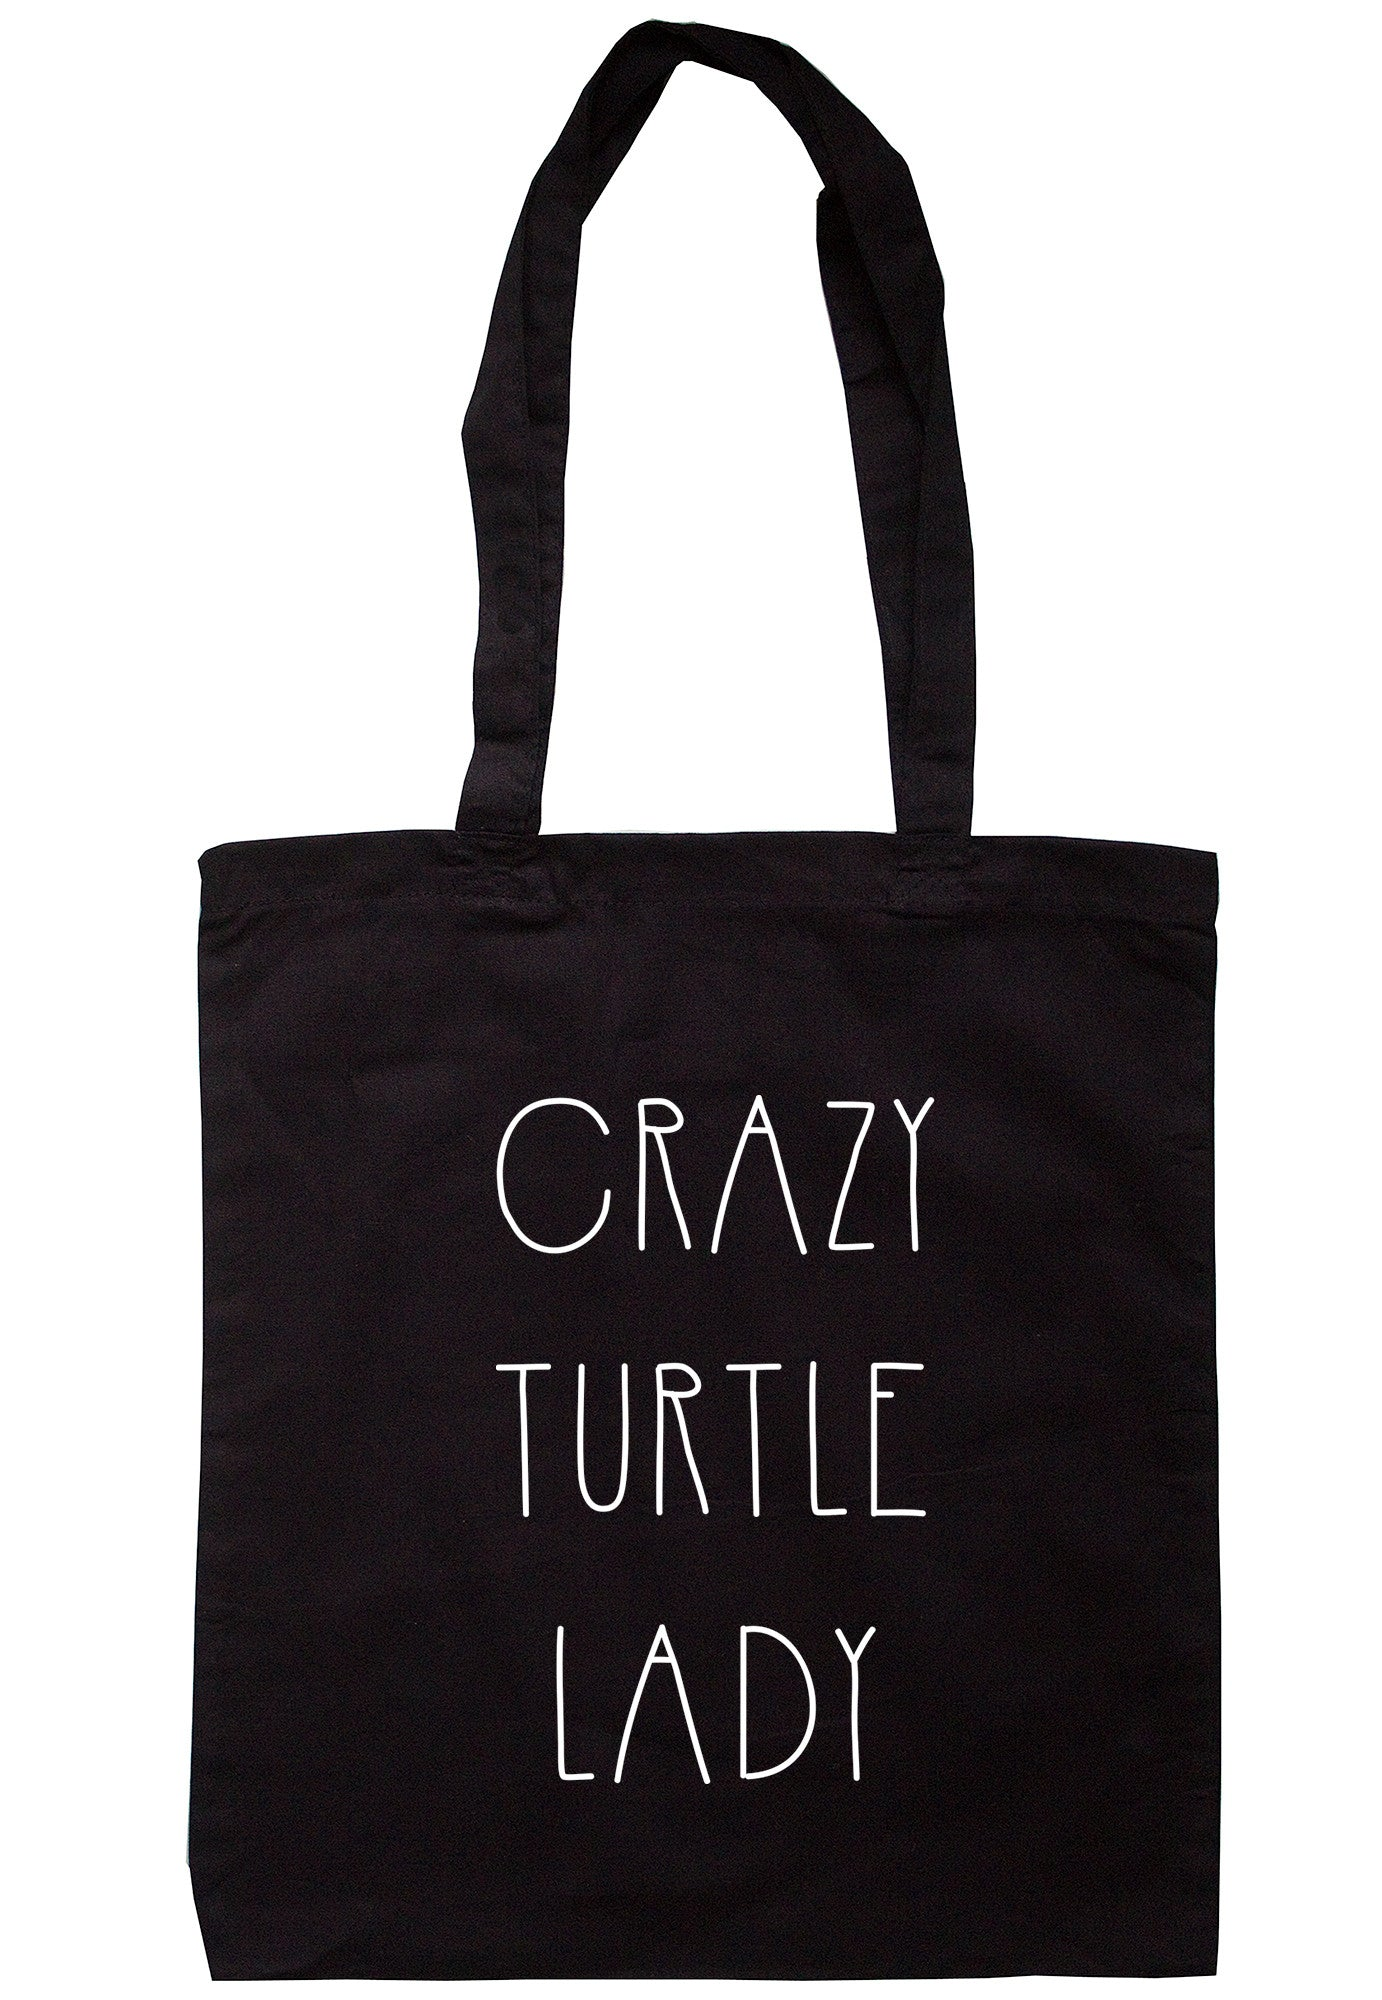 Crazy Turtle Lady Tote Bag TB0377 - Illustrated Identity Ltd.